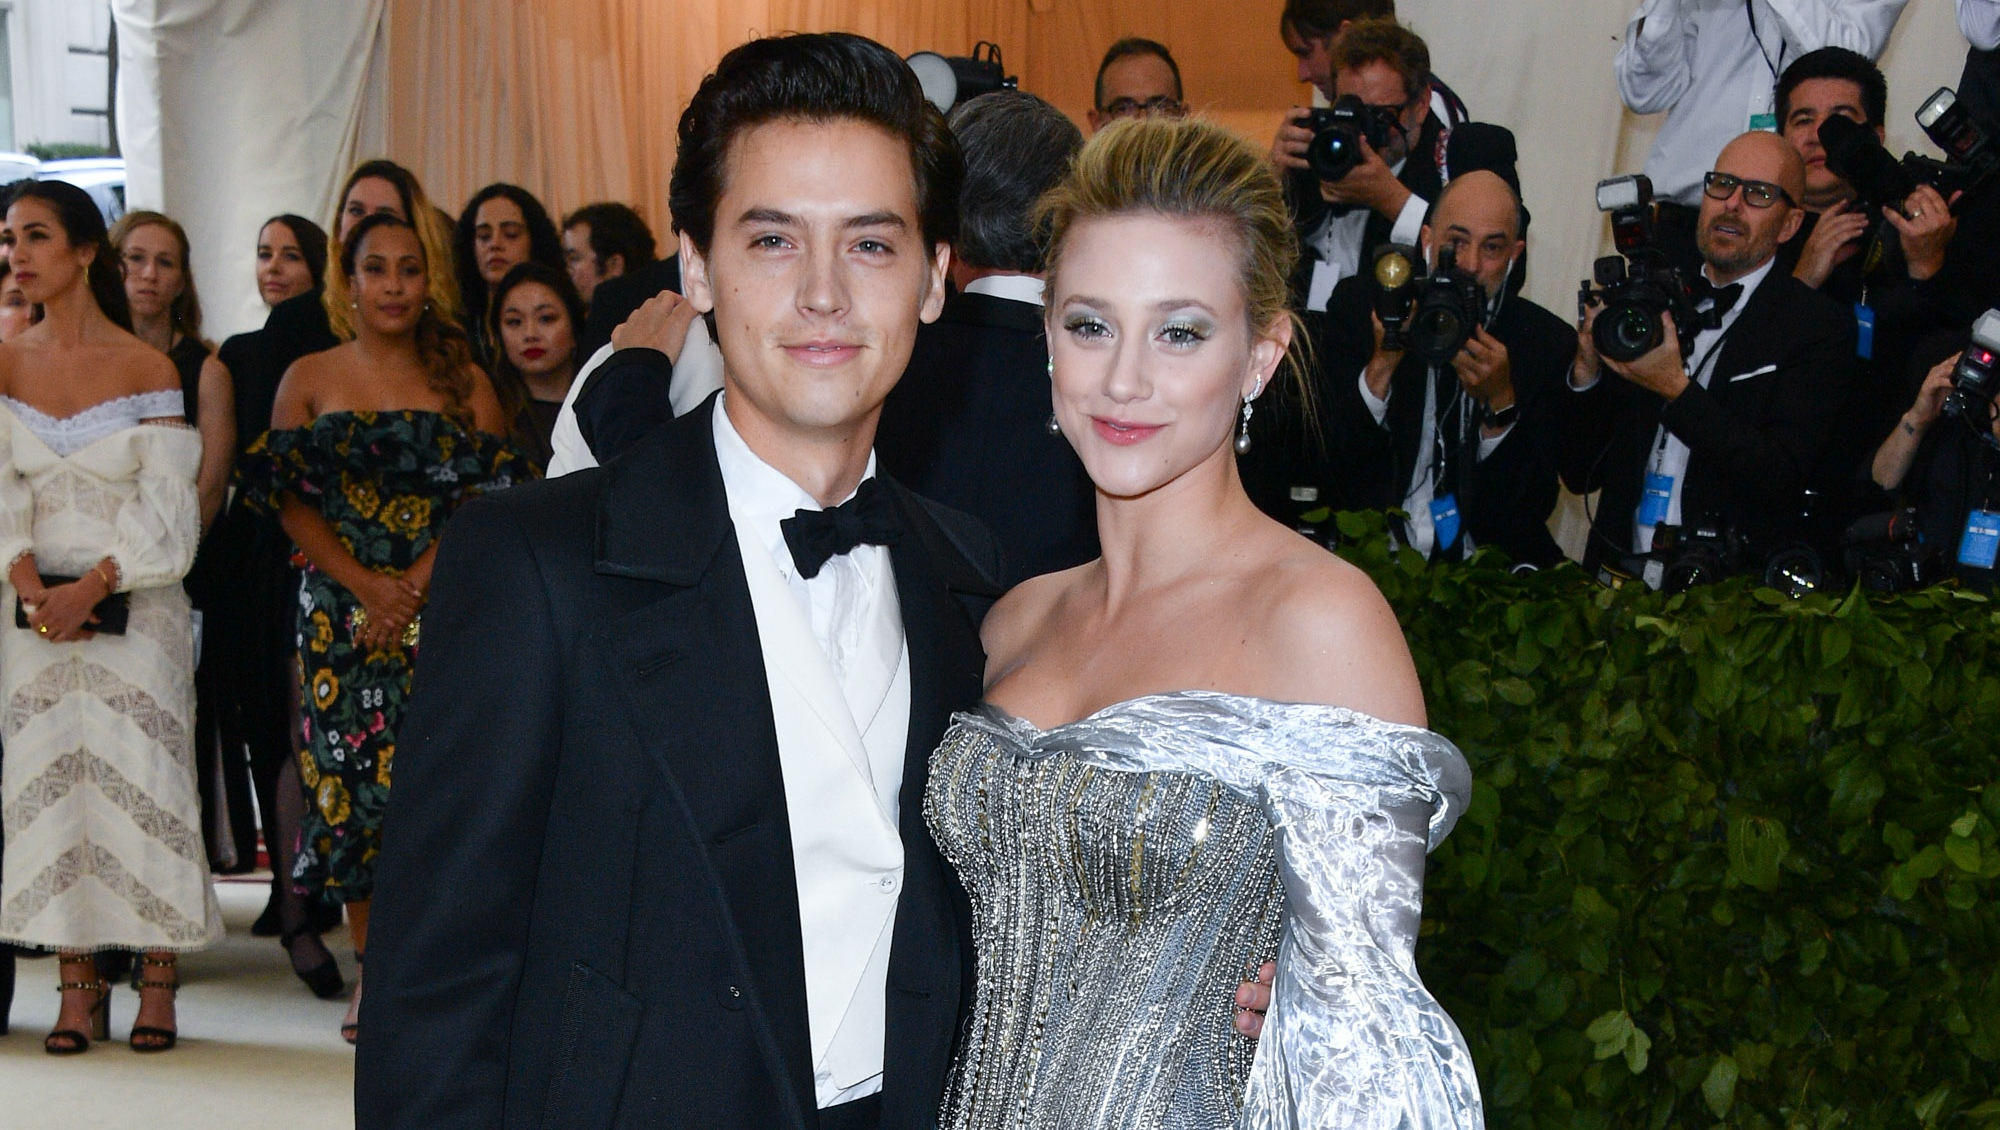 Lili Reinhart Takes Quiz To See Which Sprouse Brother She'll Marry